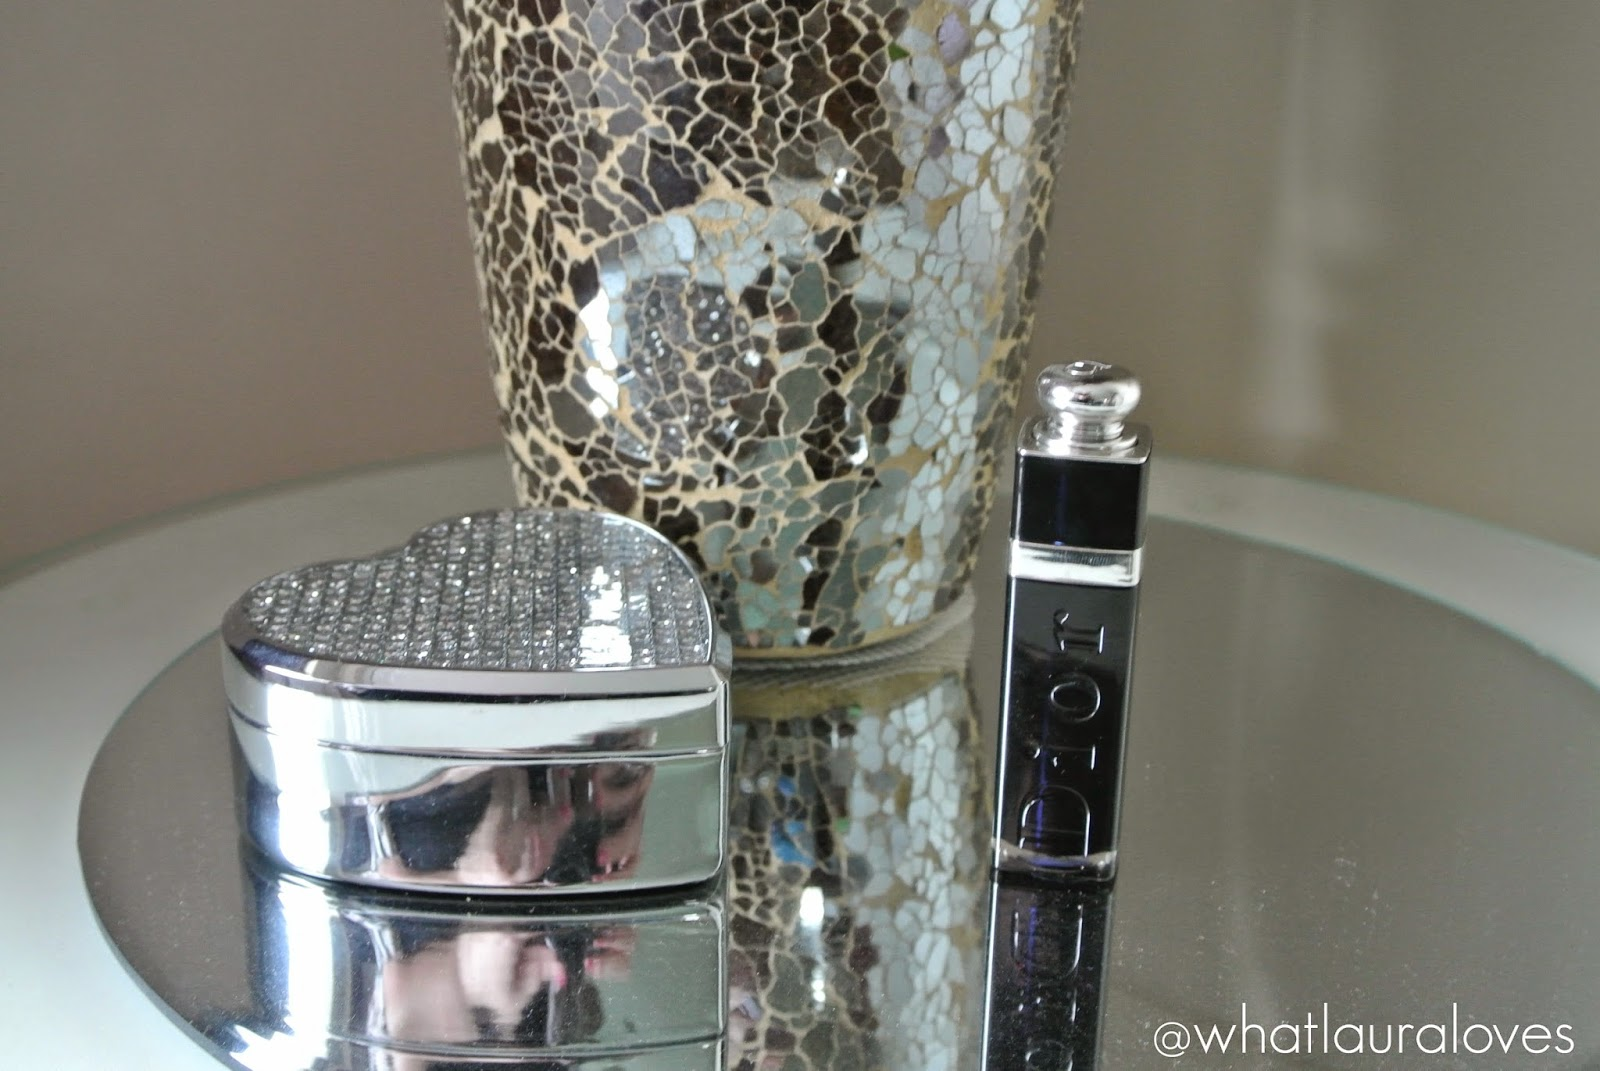 Dior Addict Extreme Lipstick in 886 Paparazzi Review